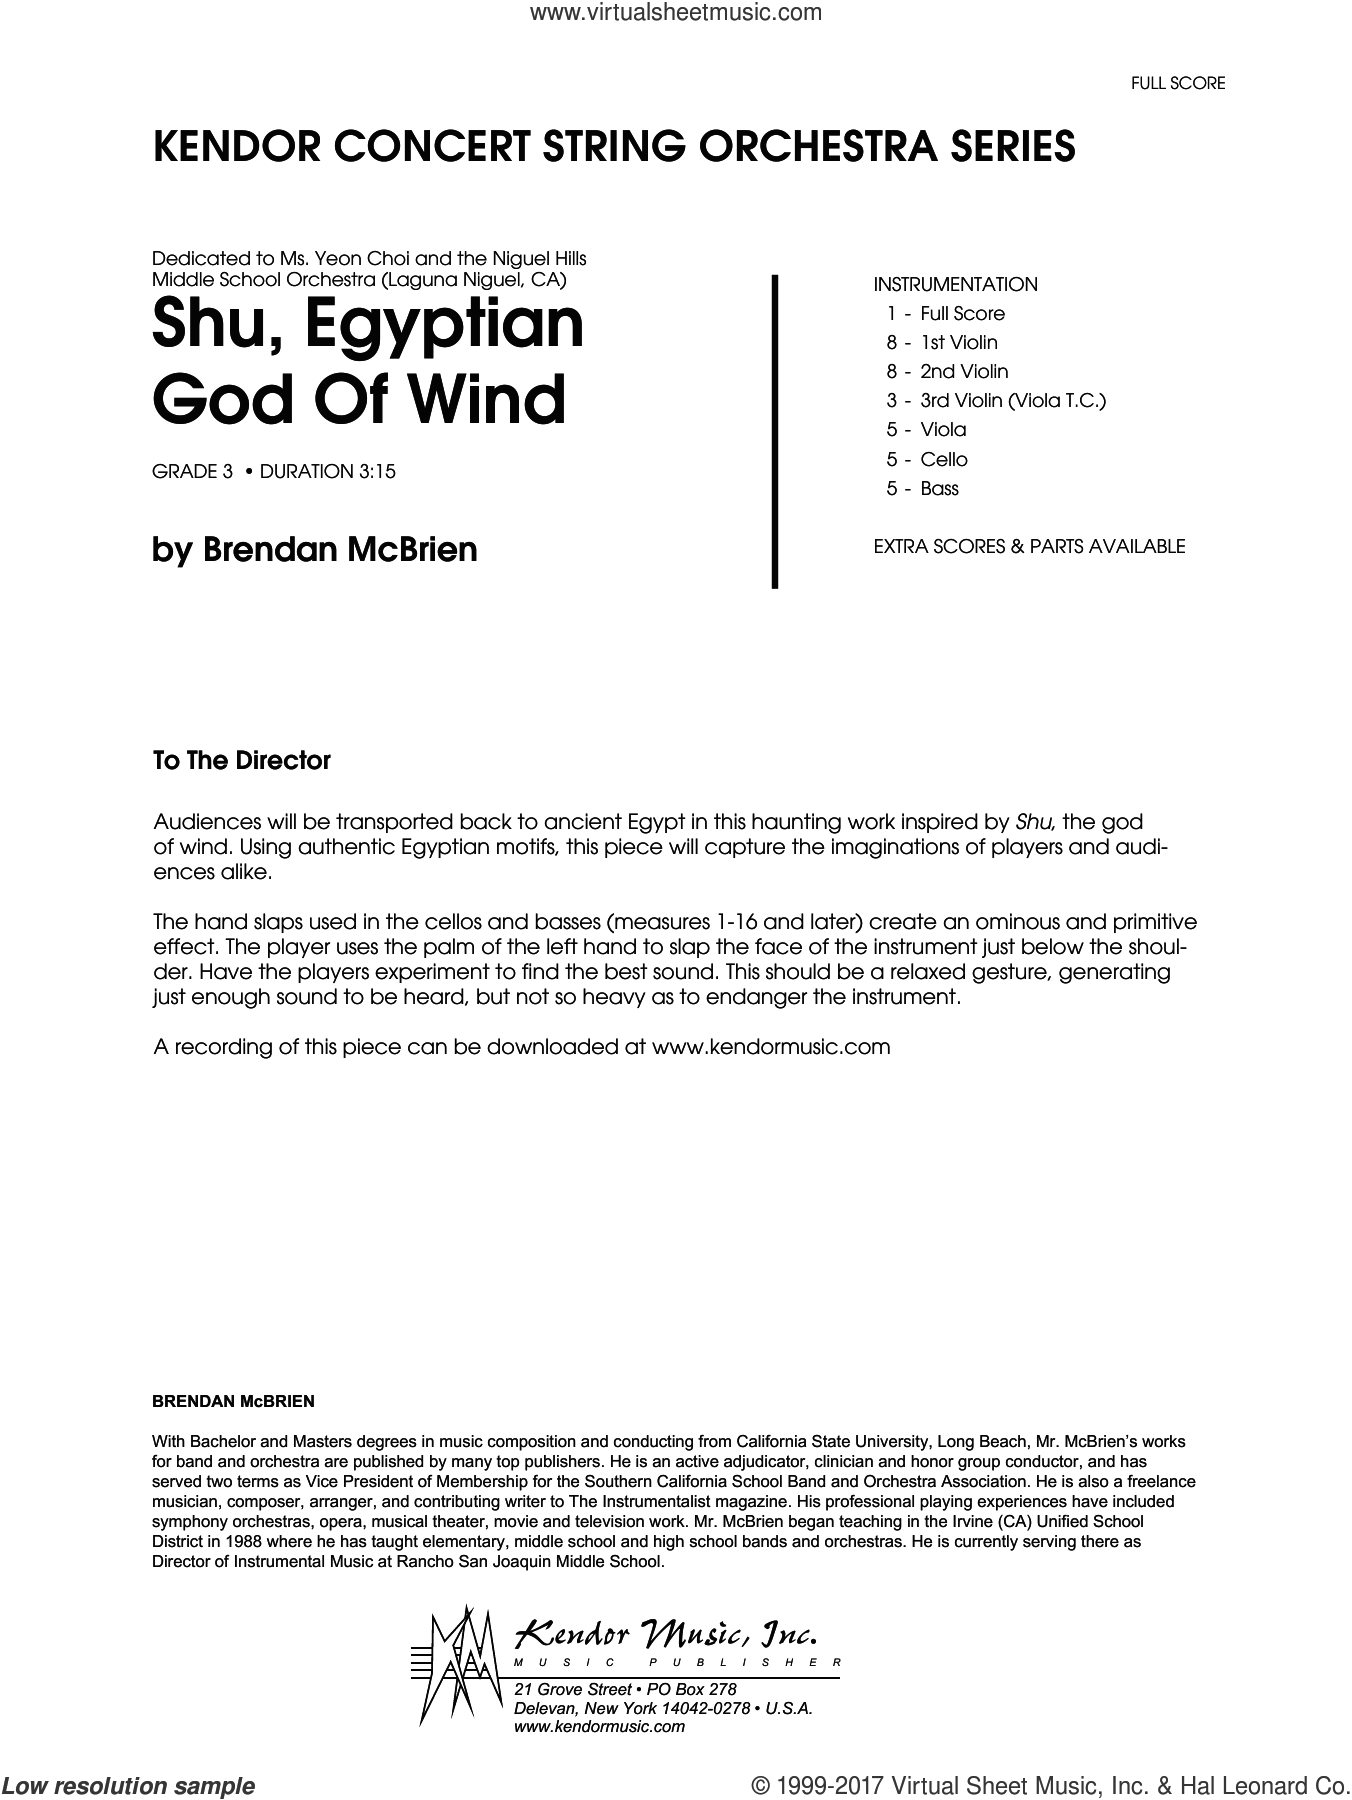 Shu, Egyptian God Of Wind (COMPLETE) sheet music for orchestra by Brendan McBrien, intermediate skill level